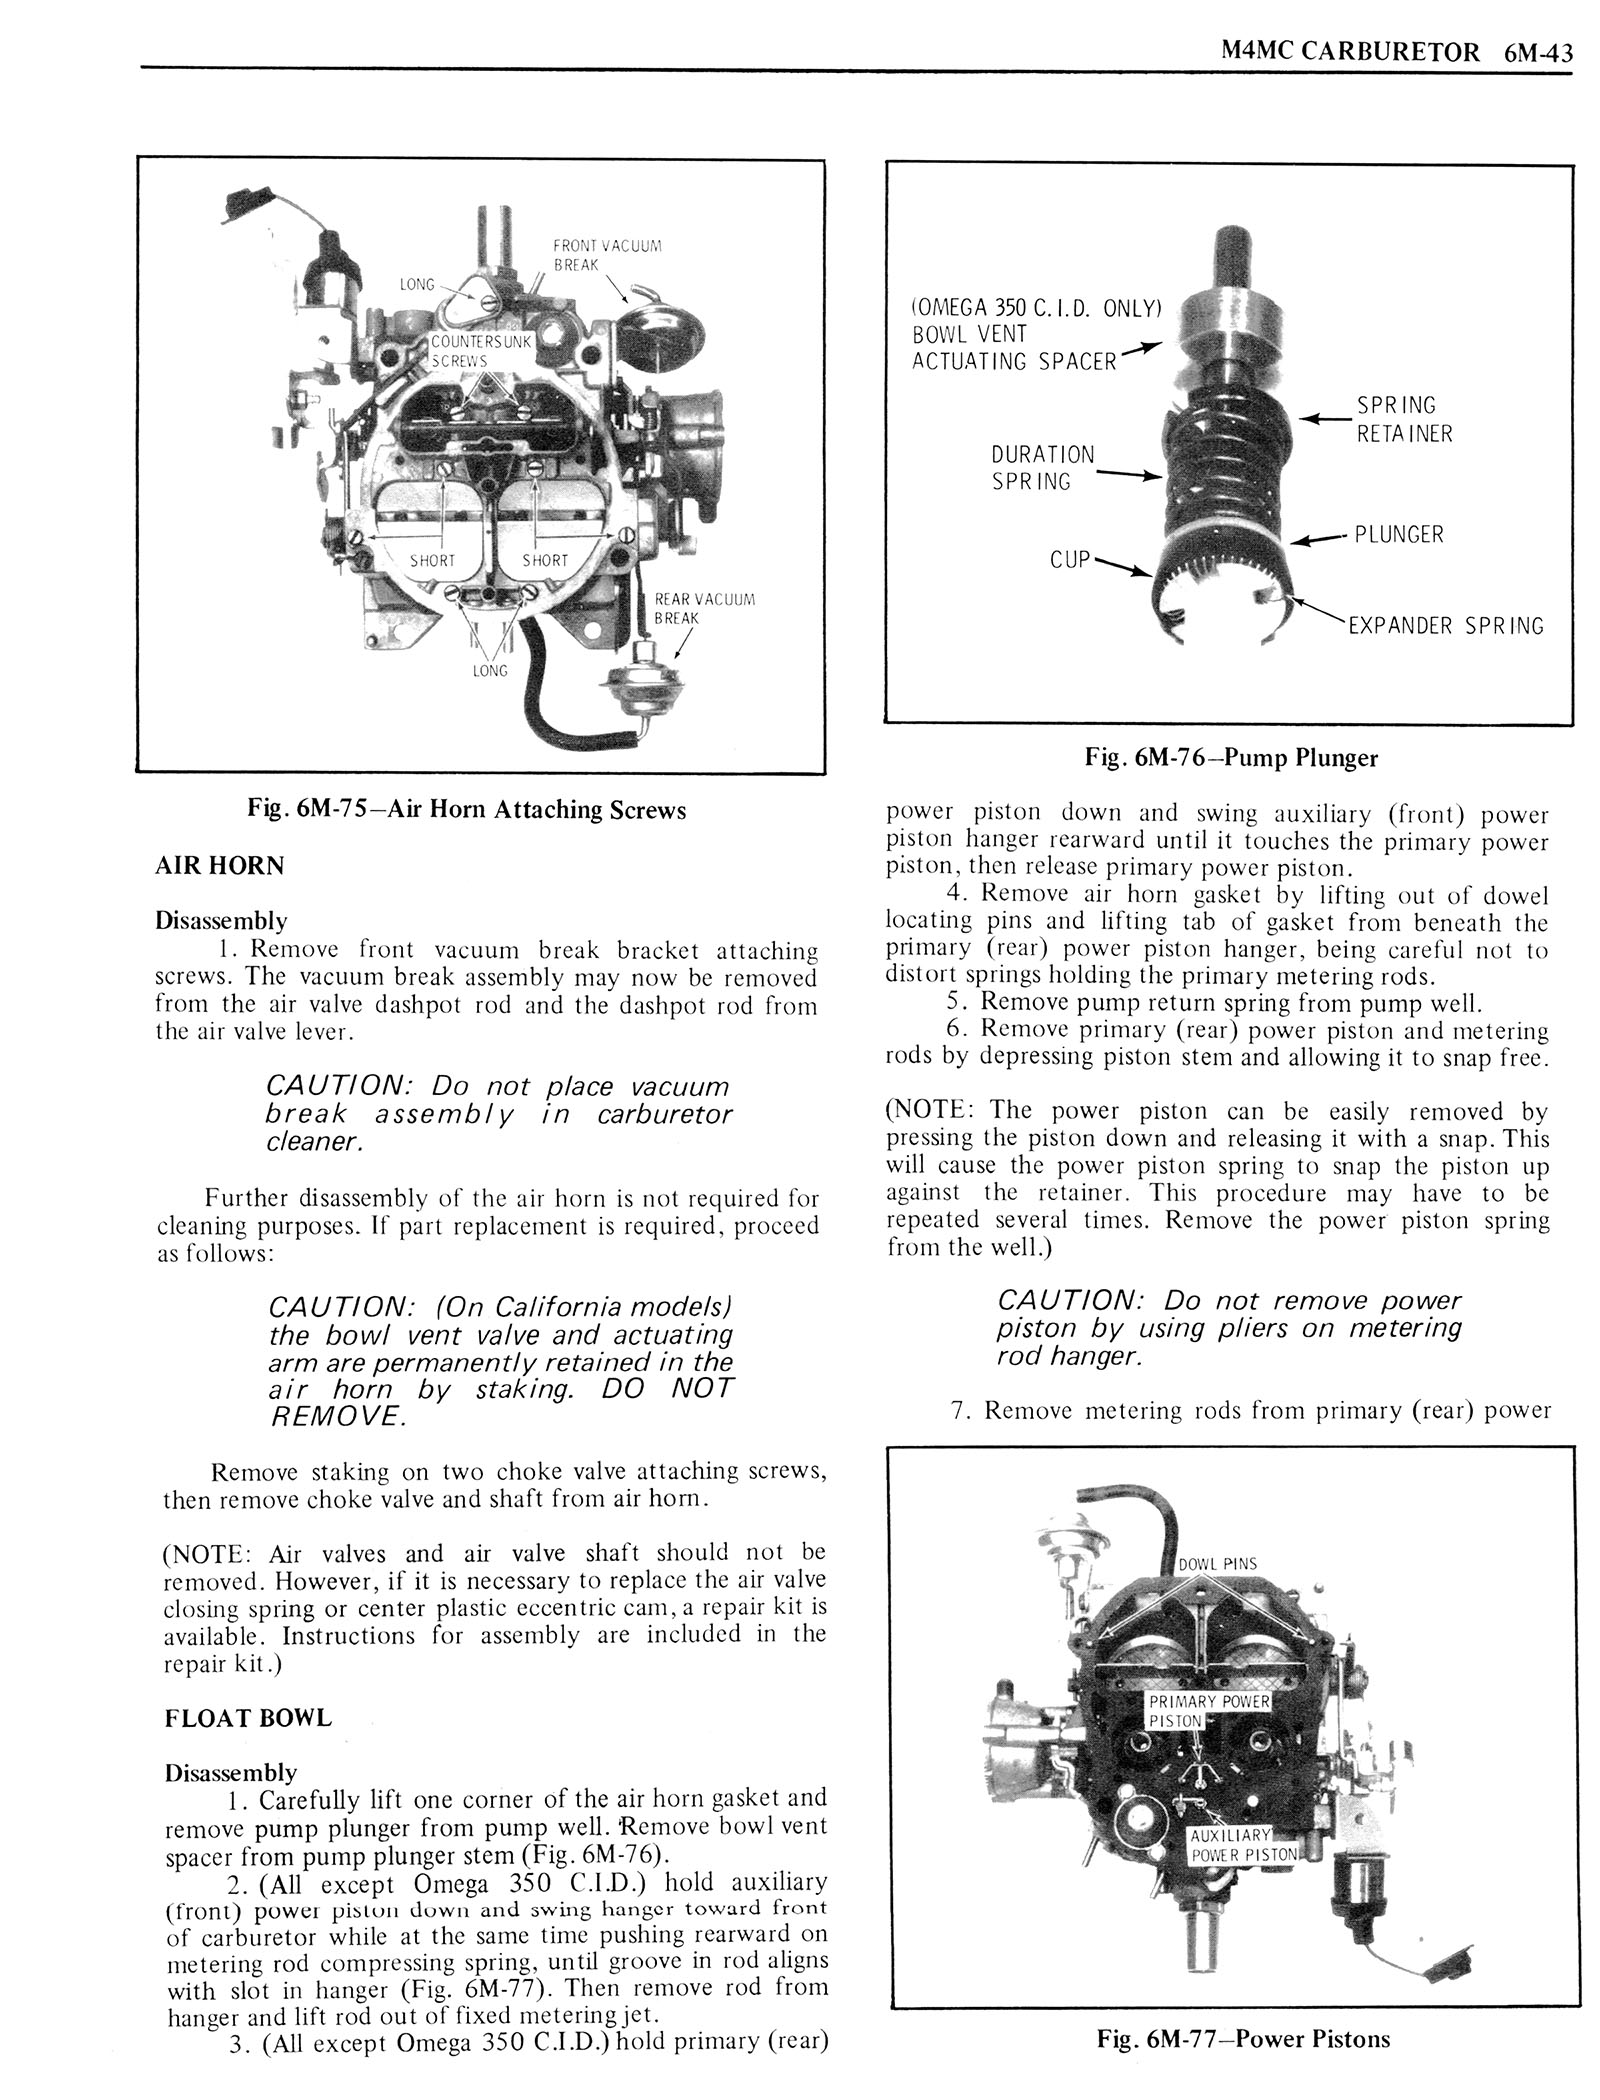 1976 Oldsmobile Service Manual page 597 of 1390